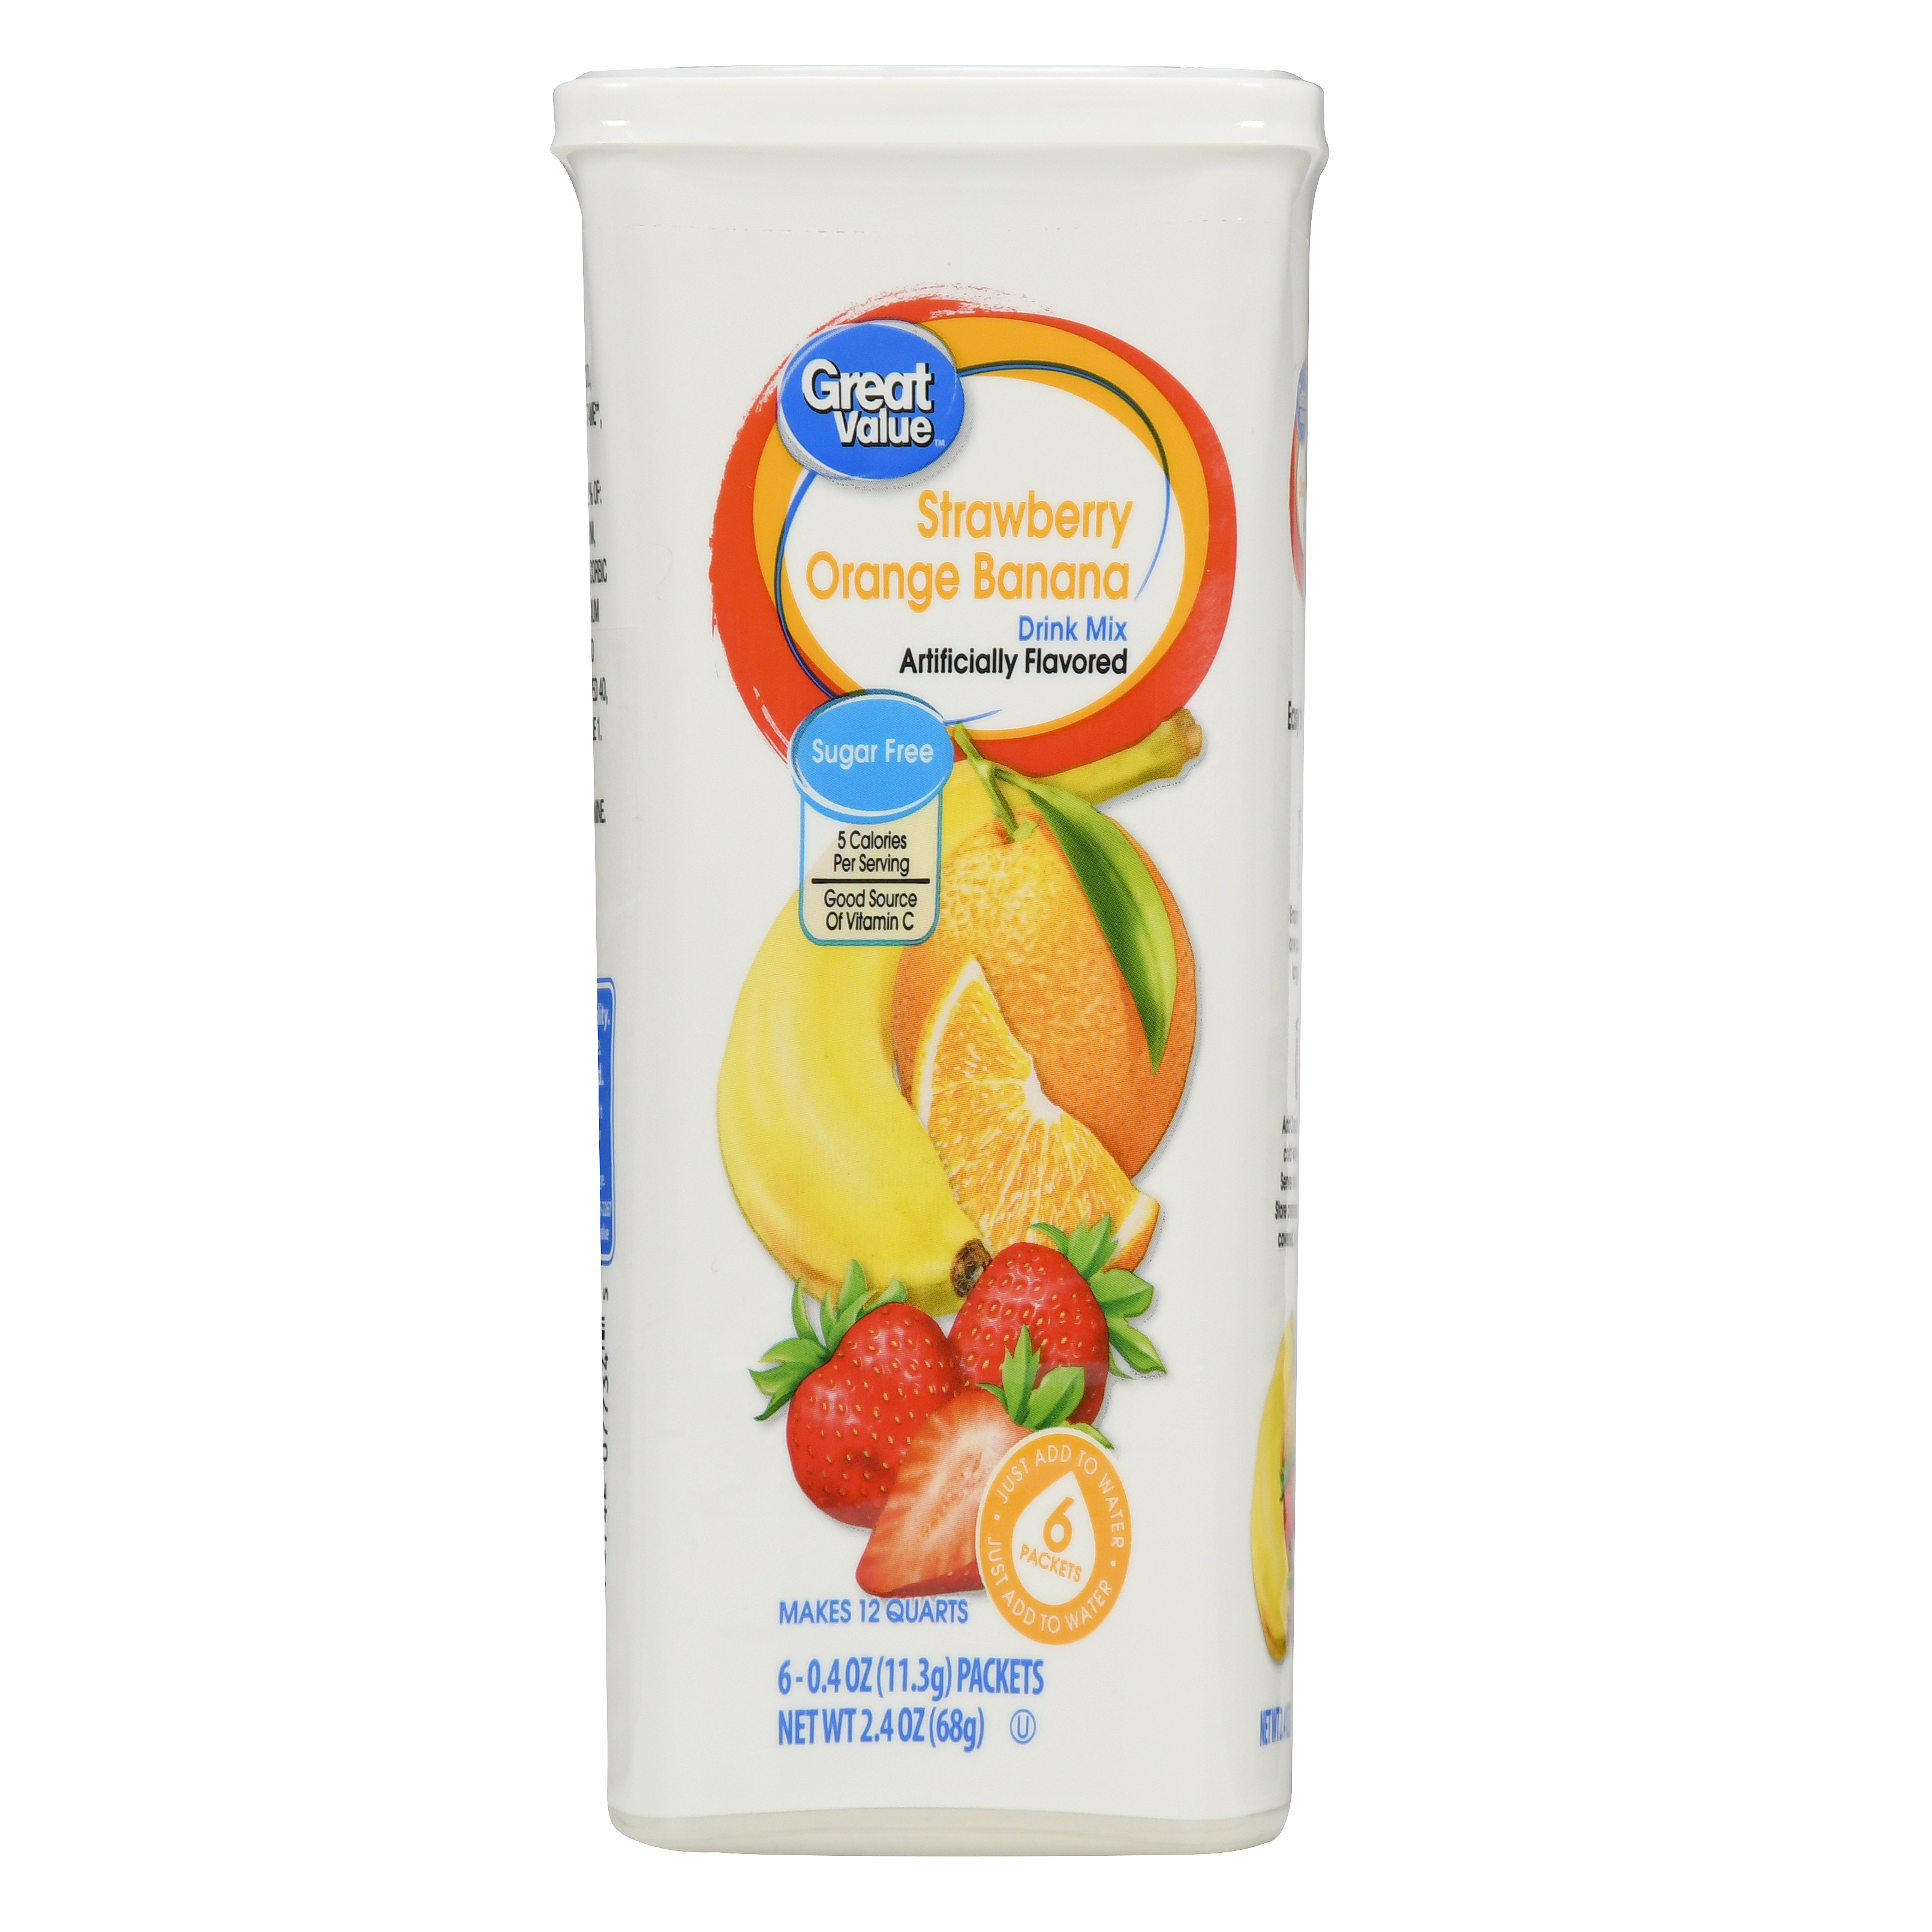 Great Value Drink Mix, Strawberry Orange and Banana, Sugar-Free, 2.4 oz, 6 Count